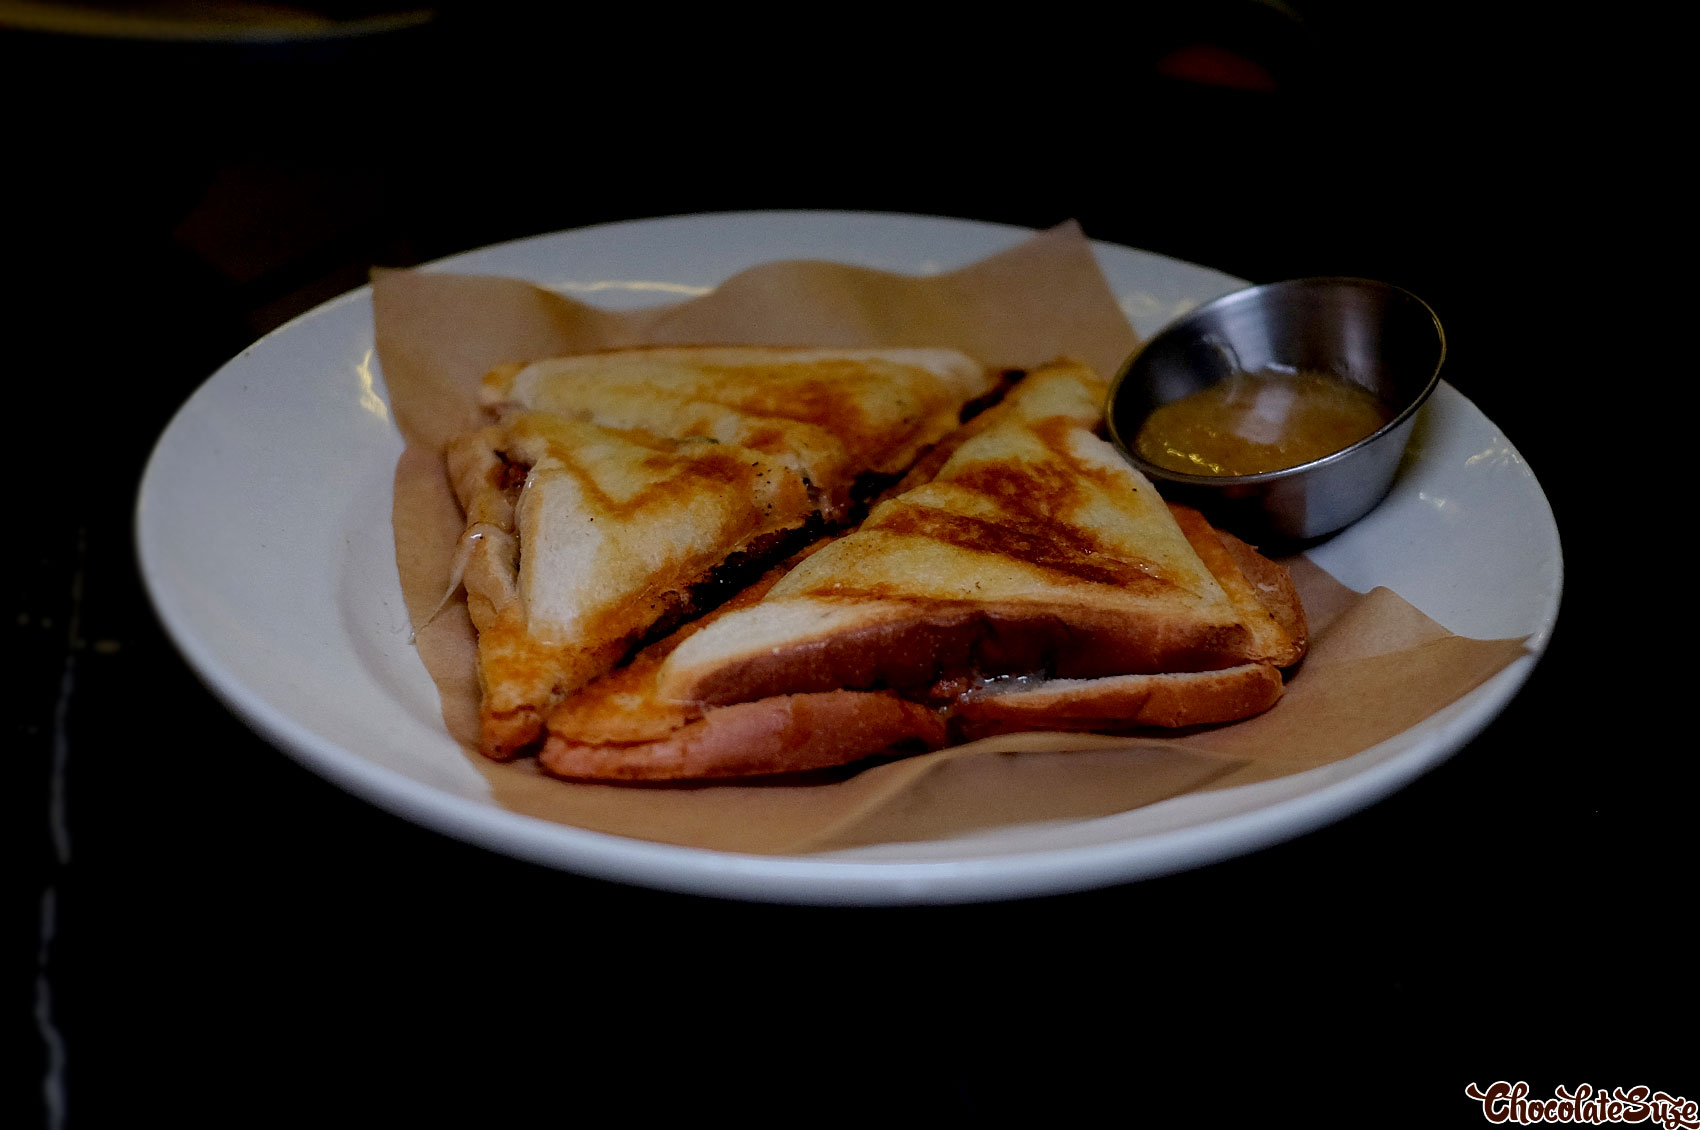 Spicy pork jaffle at Soul Dining, Surry Hills